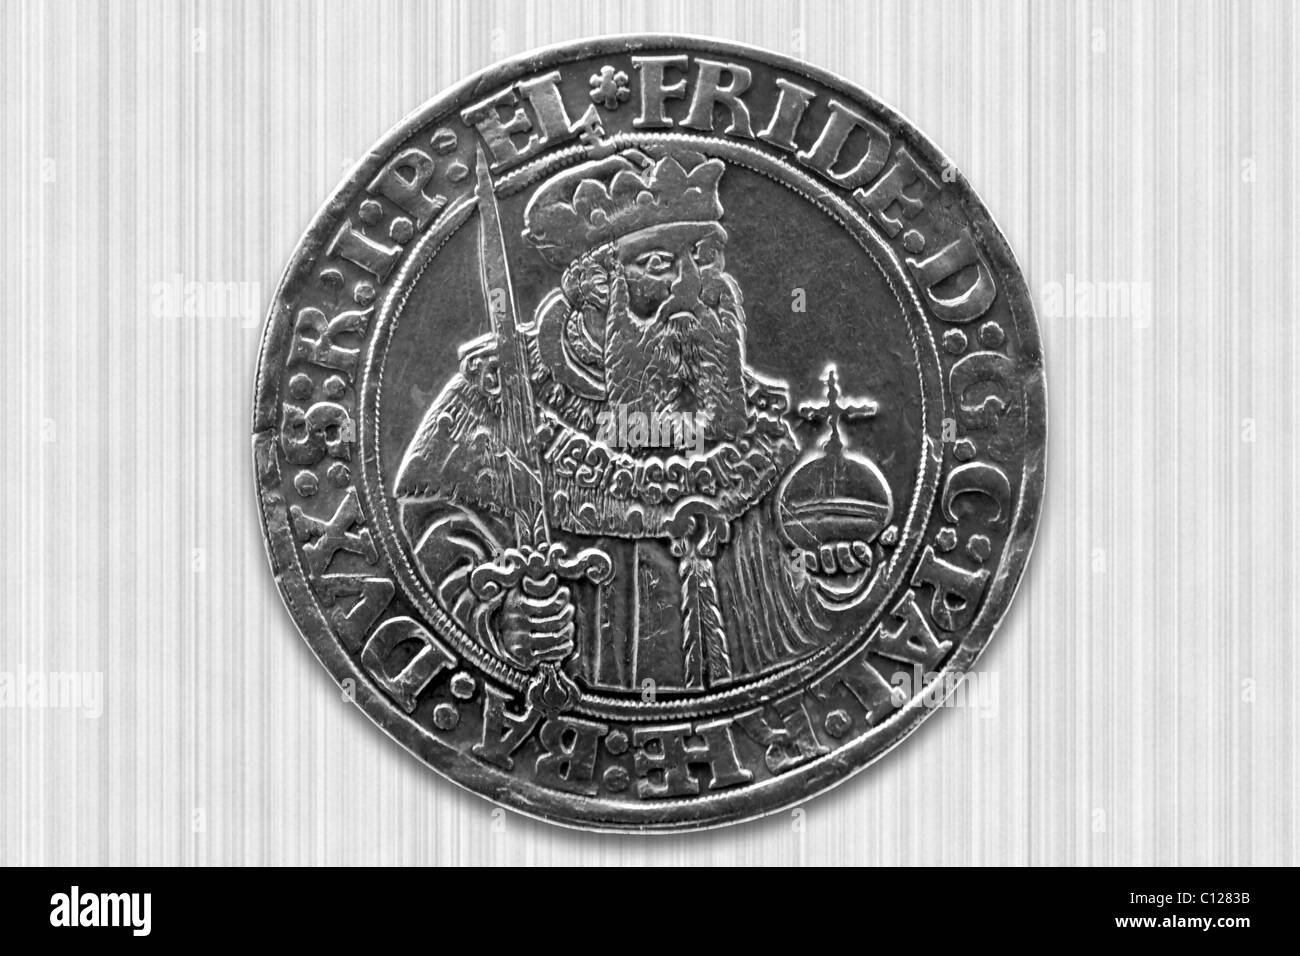 Old coin - Stock Image